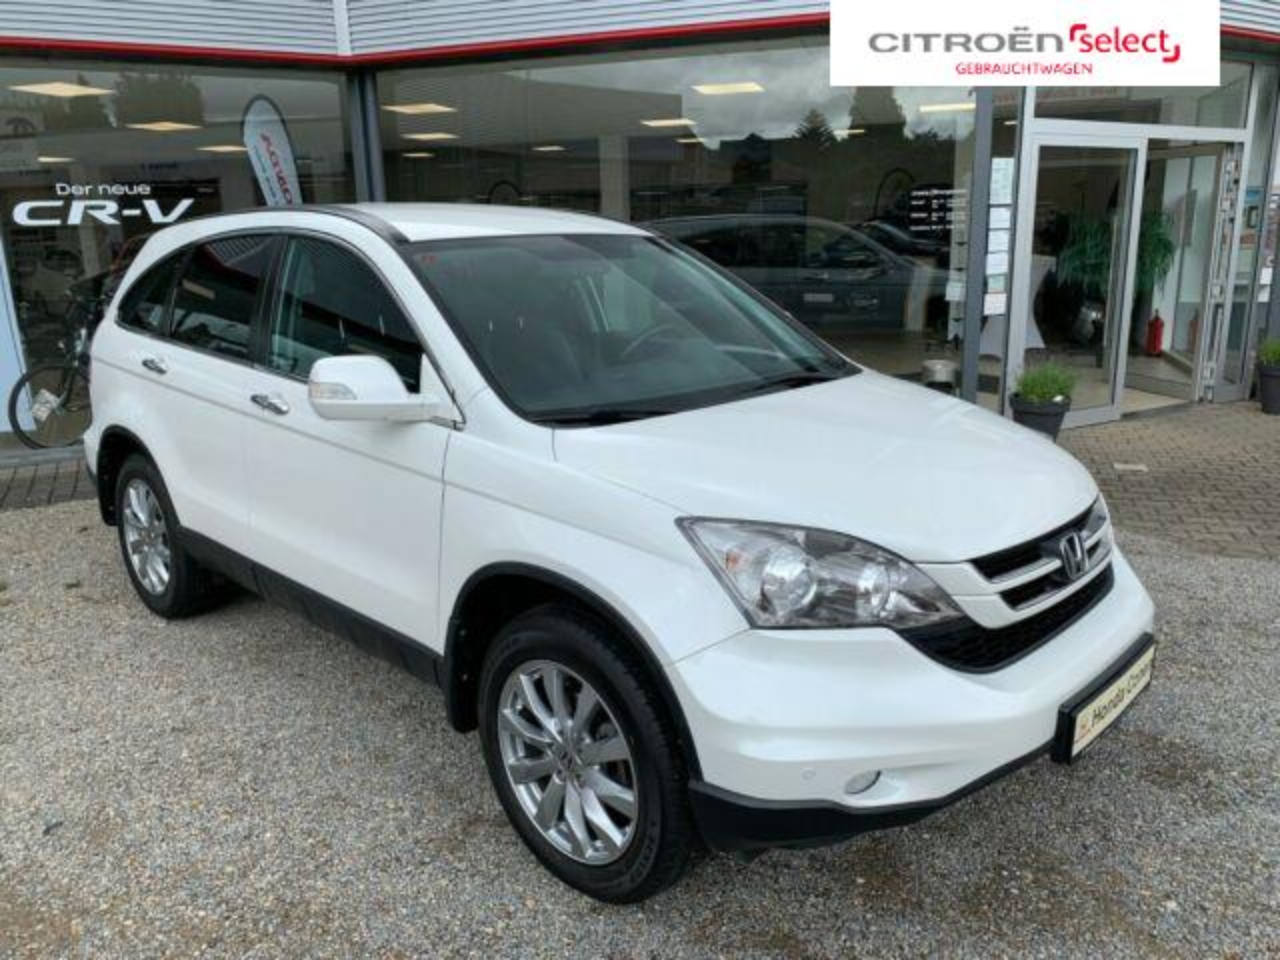 Honda CR-V 2.0i-VTEC Elegance 50th Edition Autom. GAS